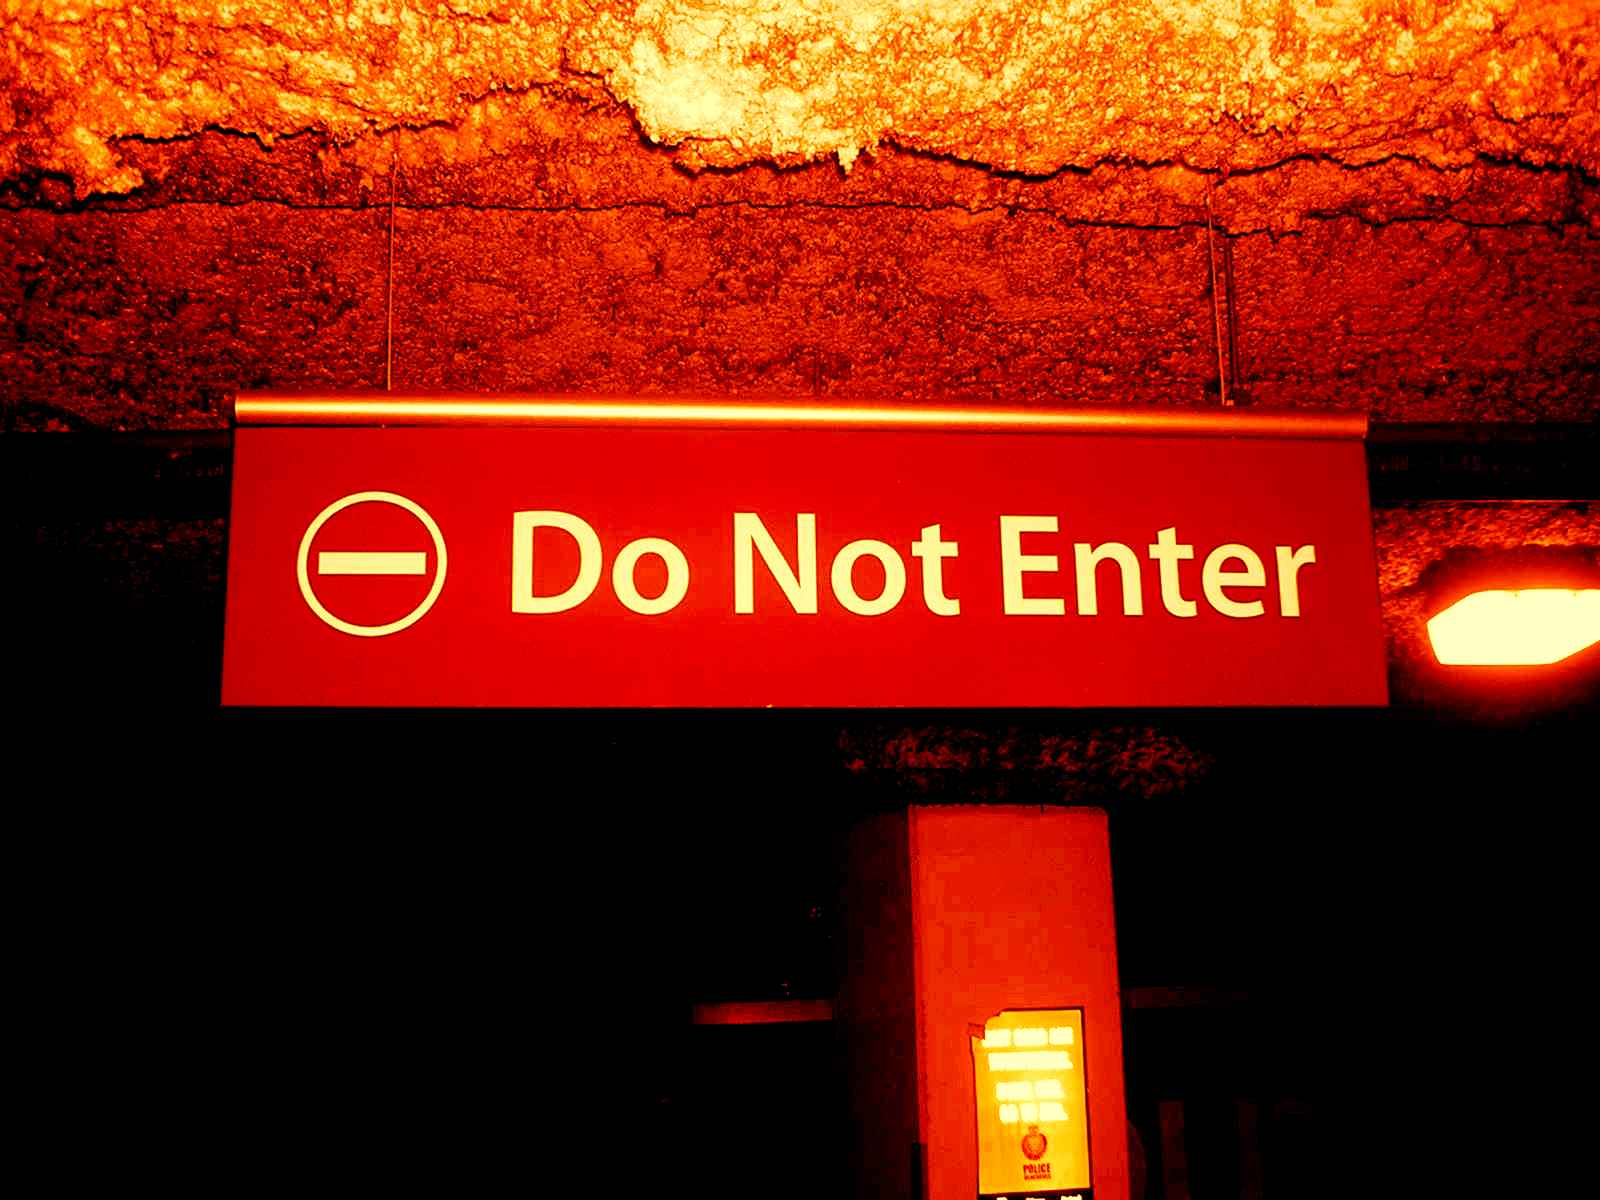 No_enter_sign